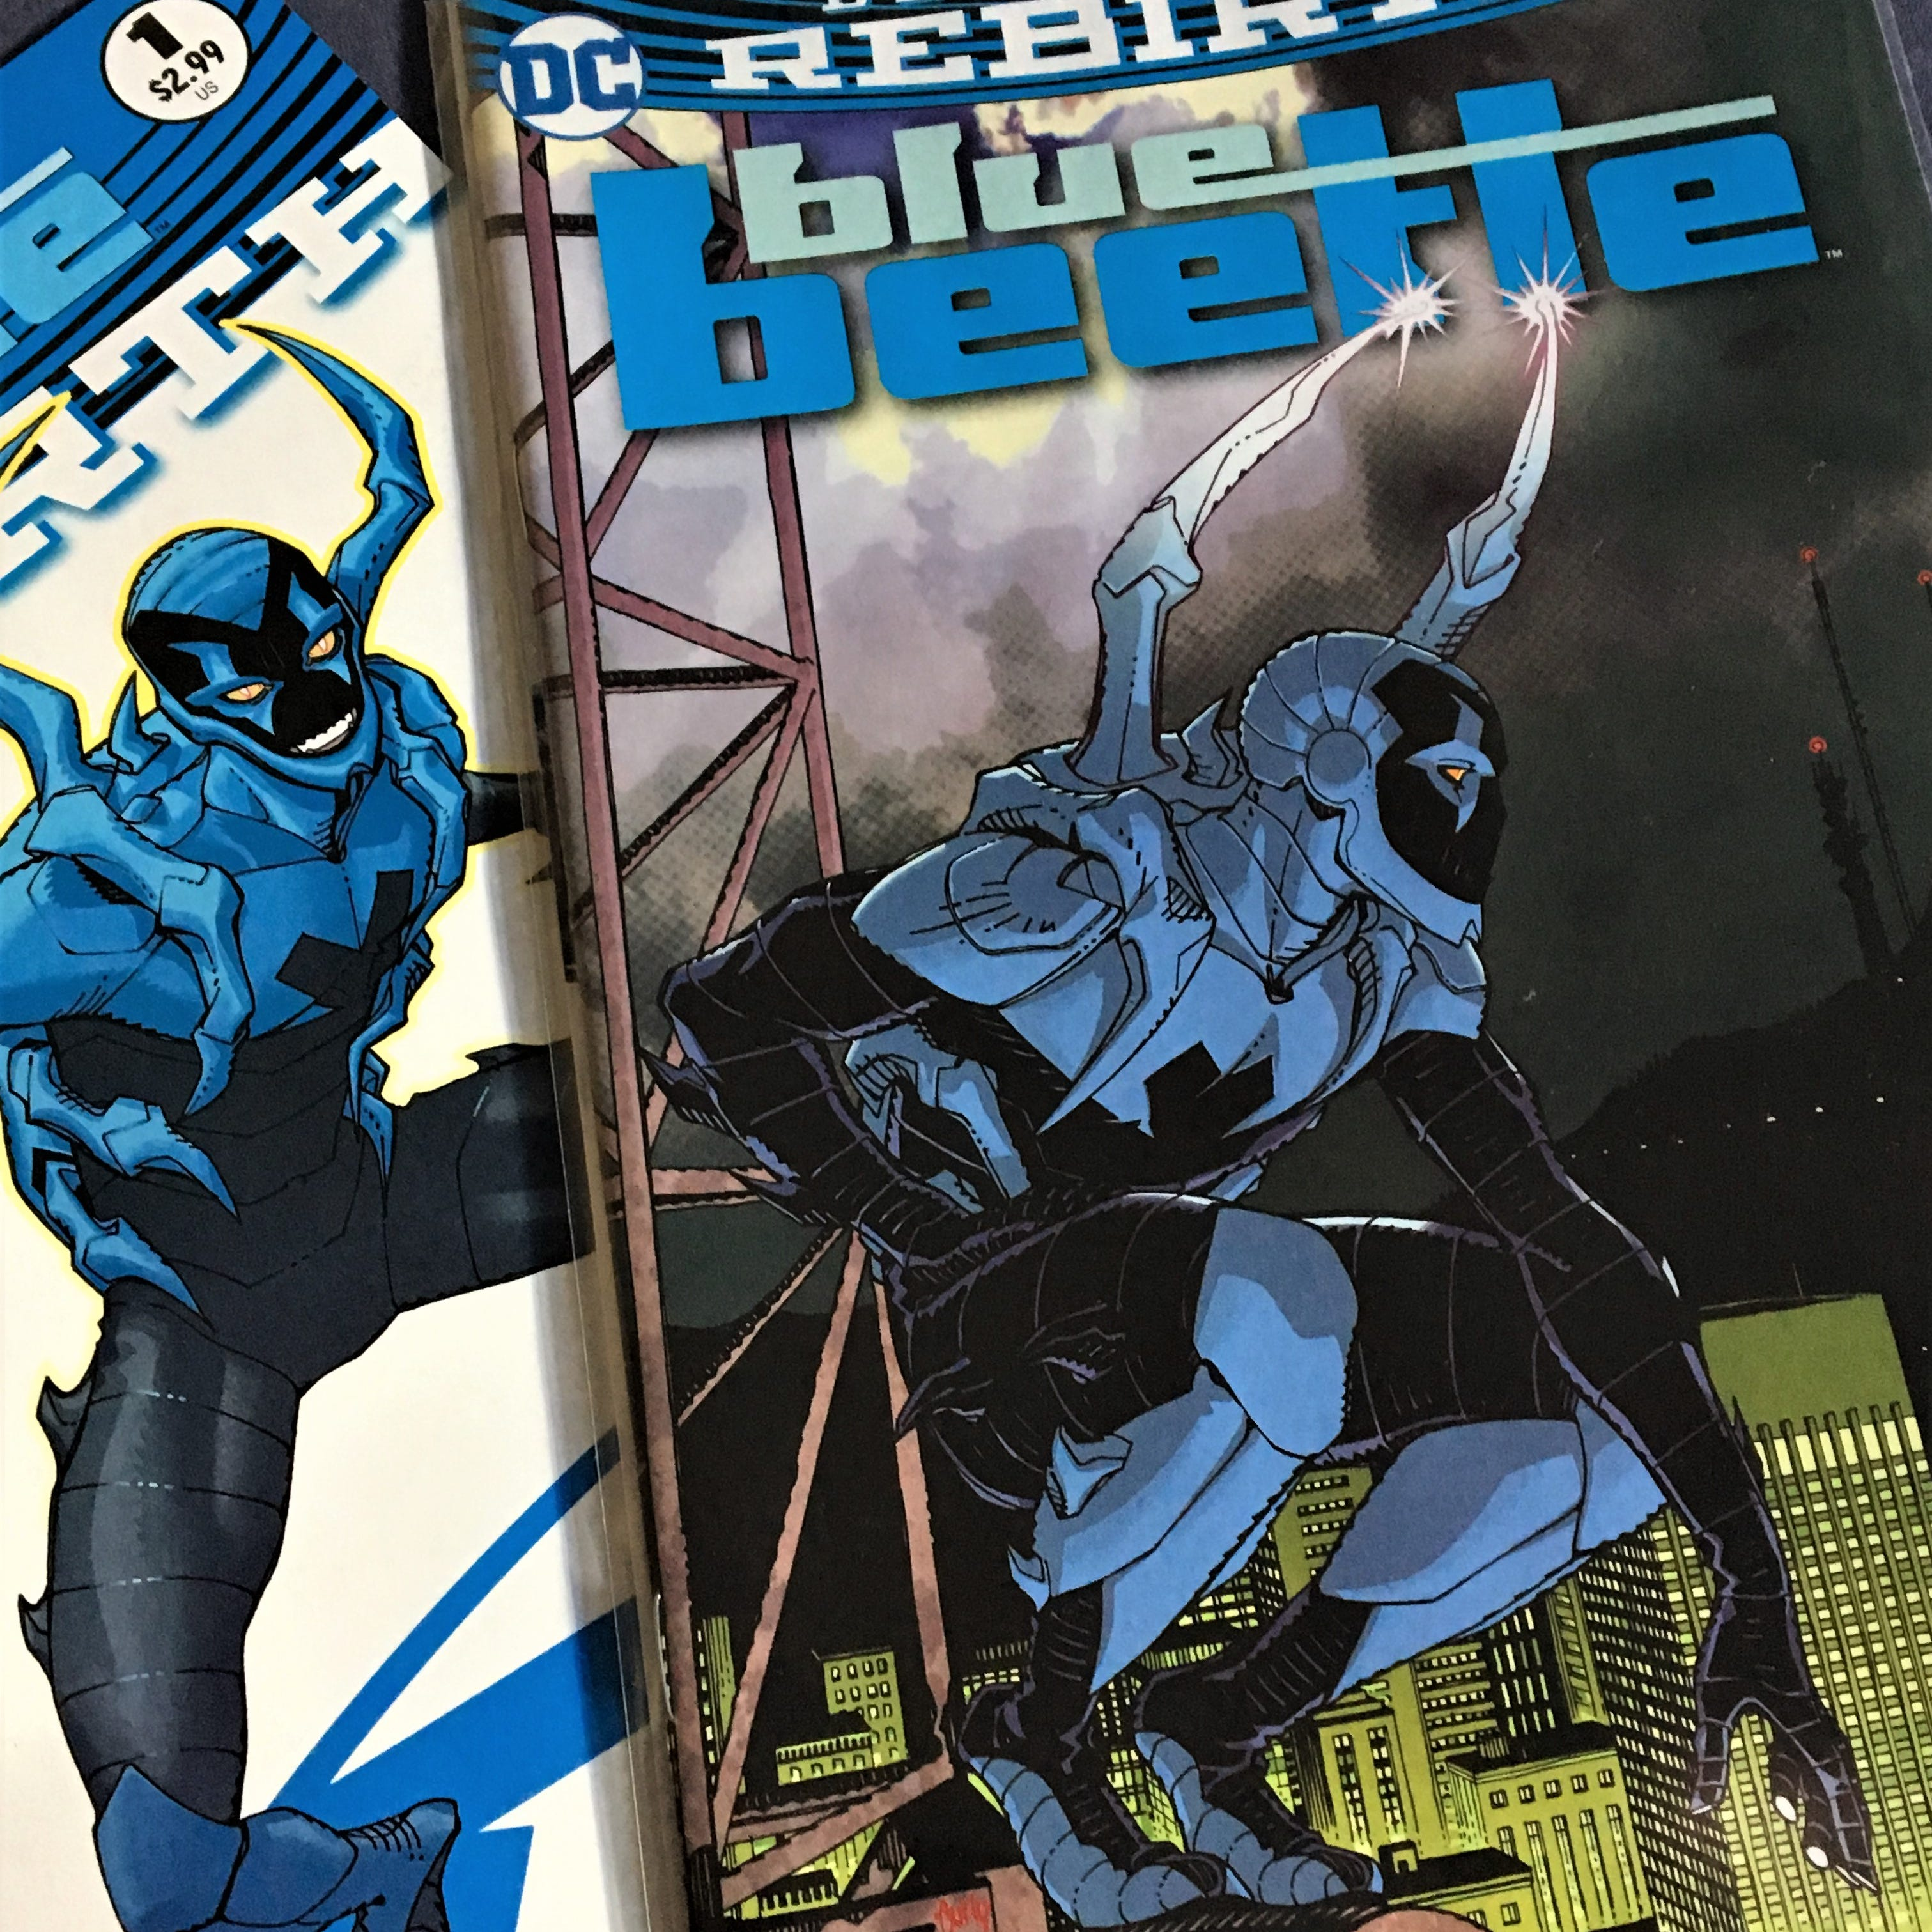 Latino DC comic book superhero Blue Beetle from El Paso in new Warner Bros. film